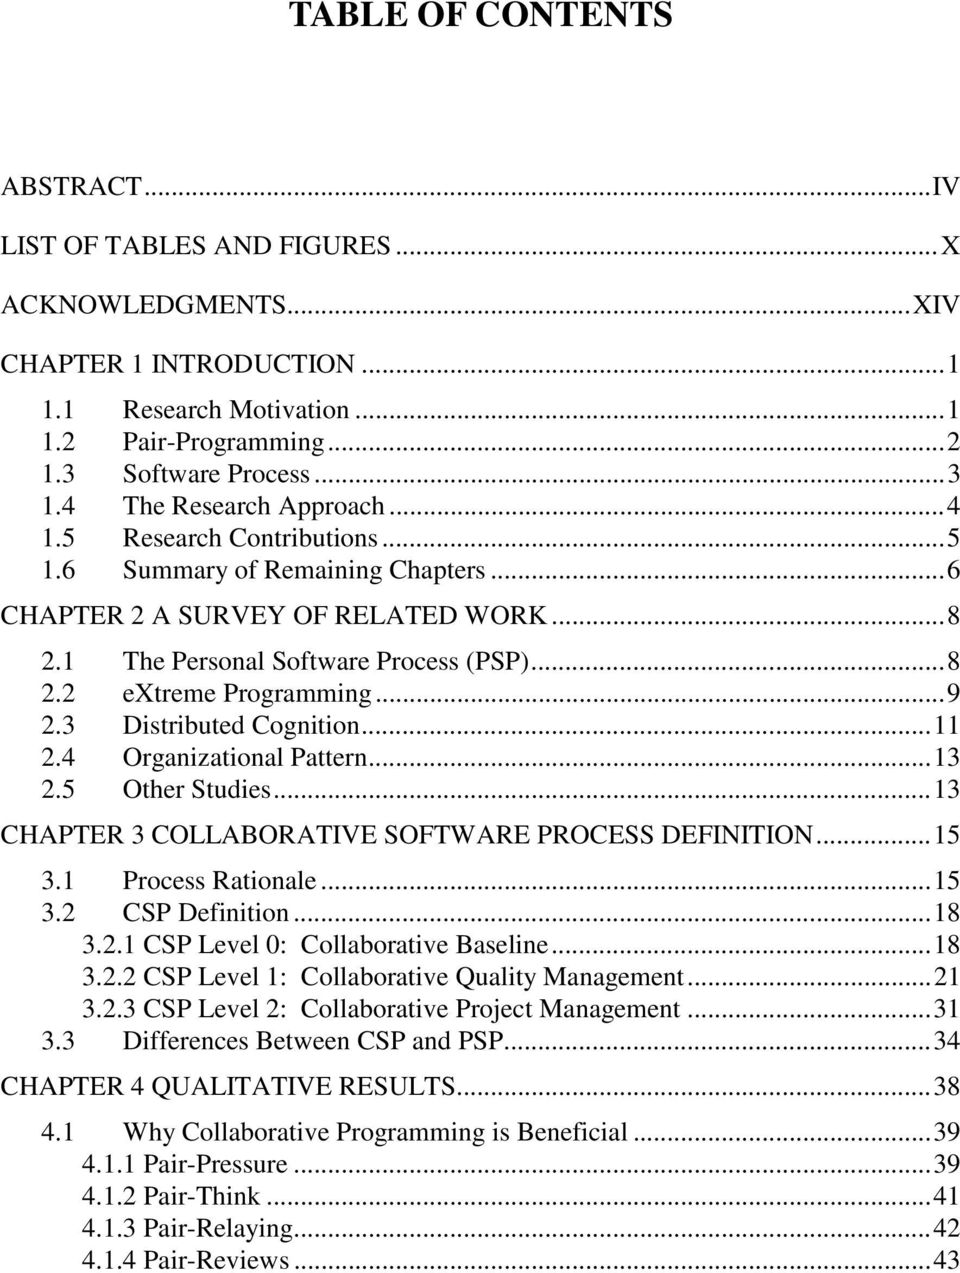 ..9 2.3 Distributed Cognition...11 2.4 Organizational Pattern...13 2.5 Other Studies...13 CHAPTER 3 COLLABORATIVE SOFTWARE PROCESS DEFINITION...15 3.1 Process Rationale...15 3.2 CSP Definition...18 3.